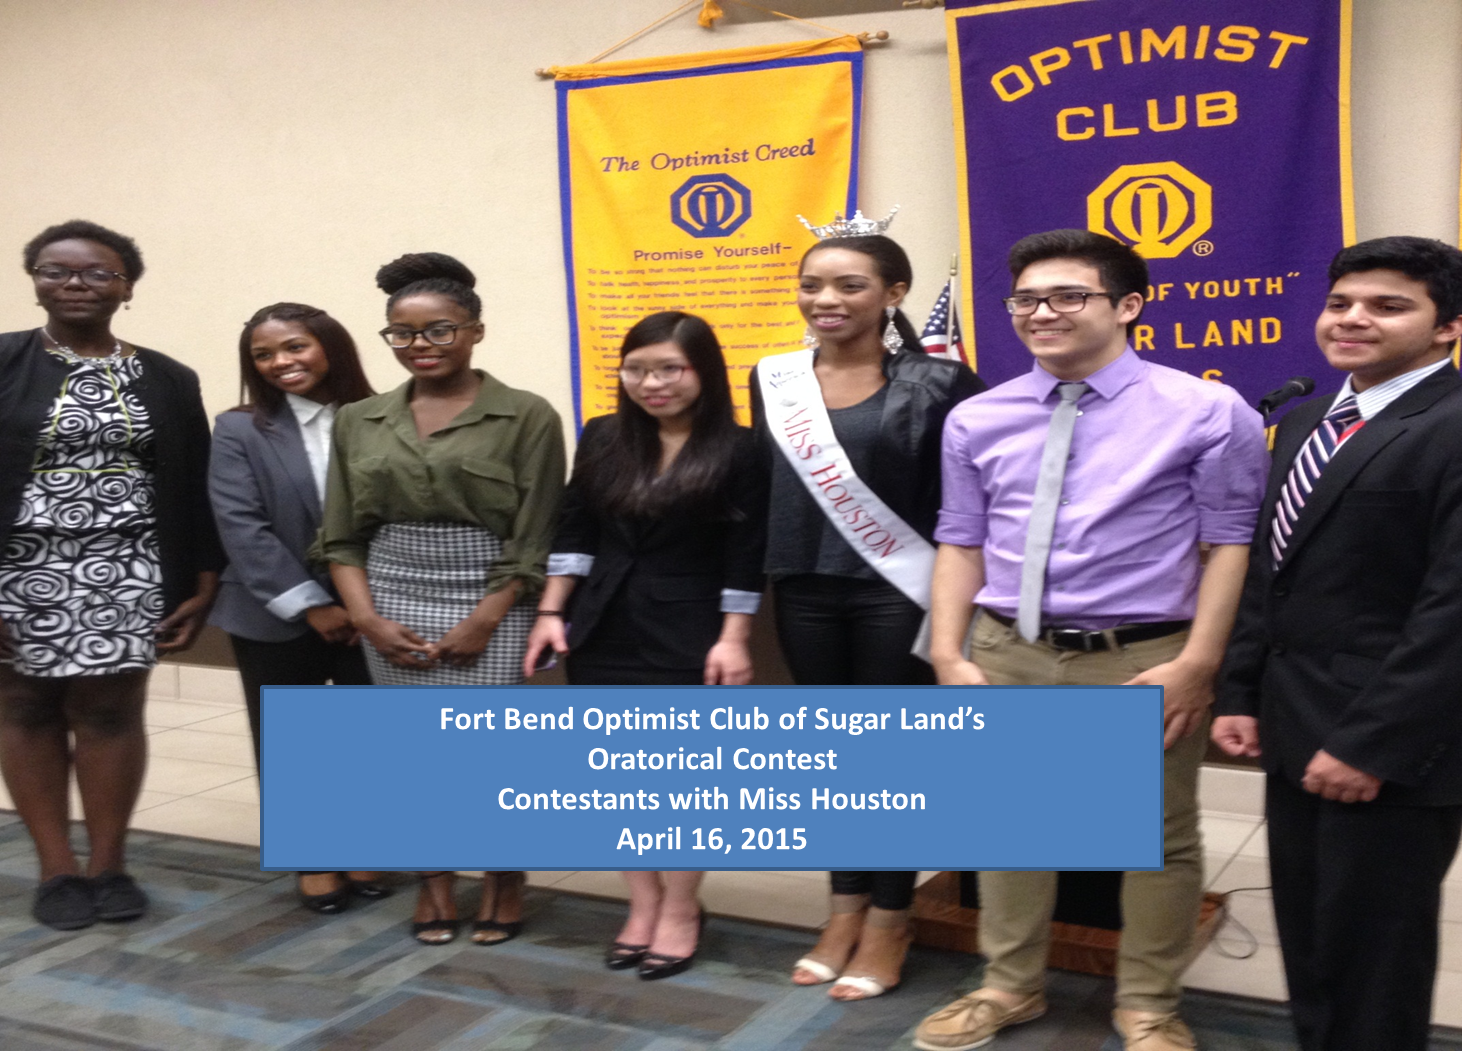 optimist club essay winners The breakfast optimist club of spartanburg held their annual essay contest on feb 5 winners were caroline cavendish, first place deona mims, second place and savannah young third place.